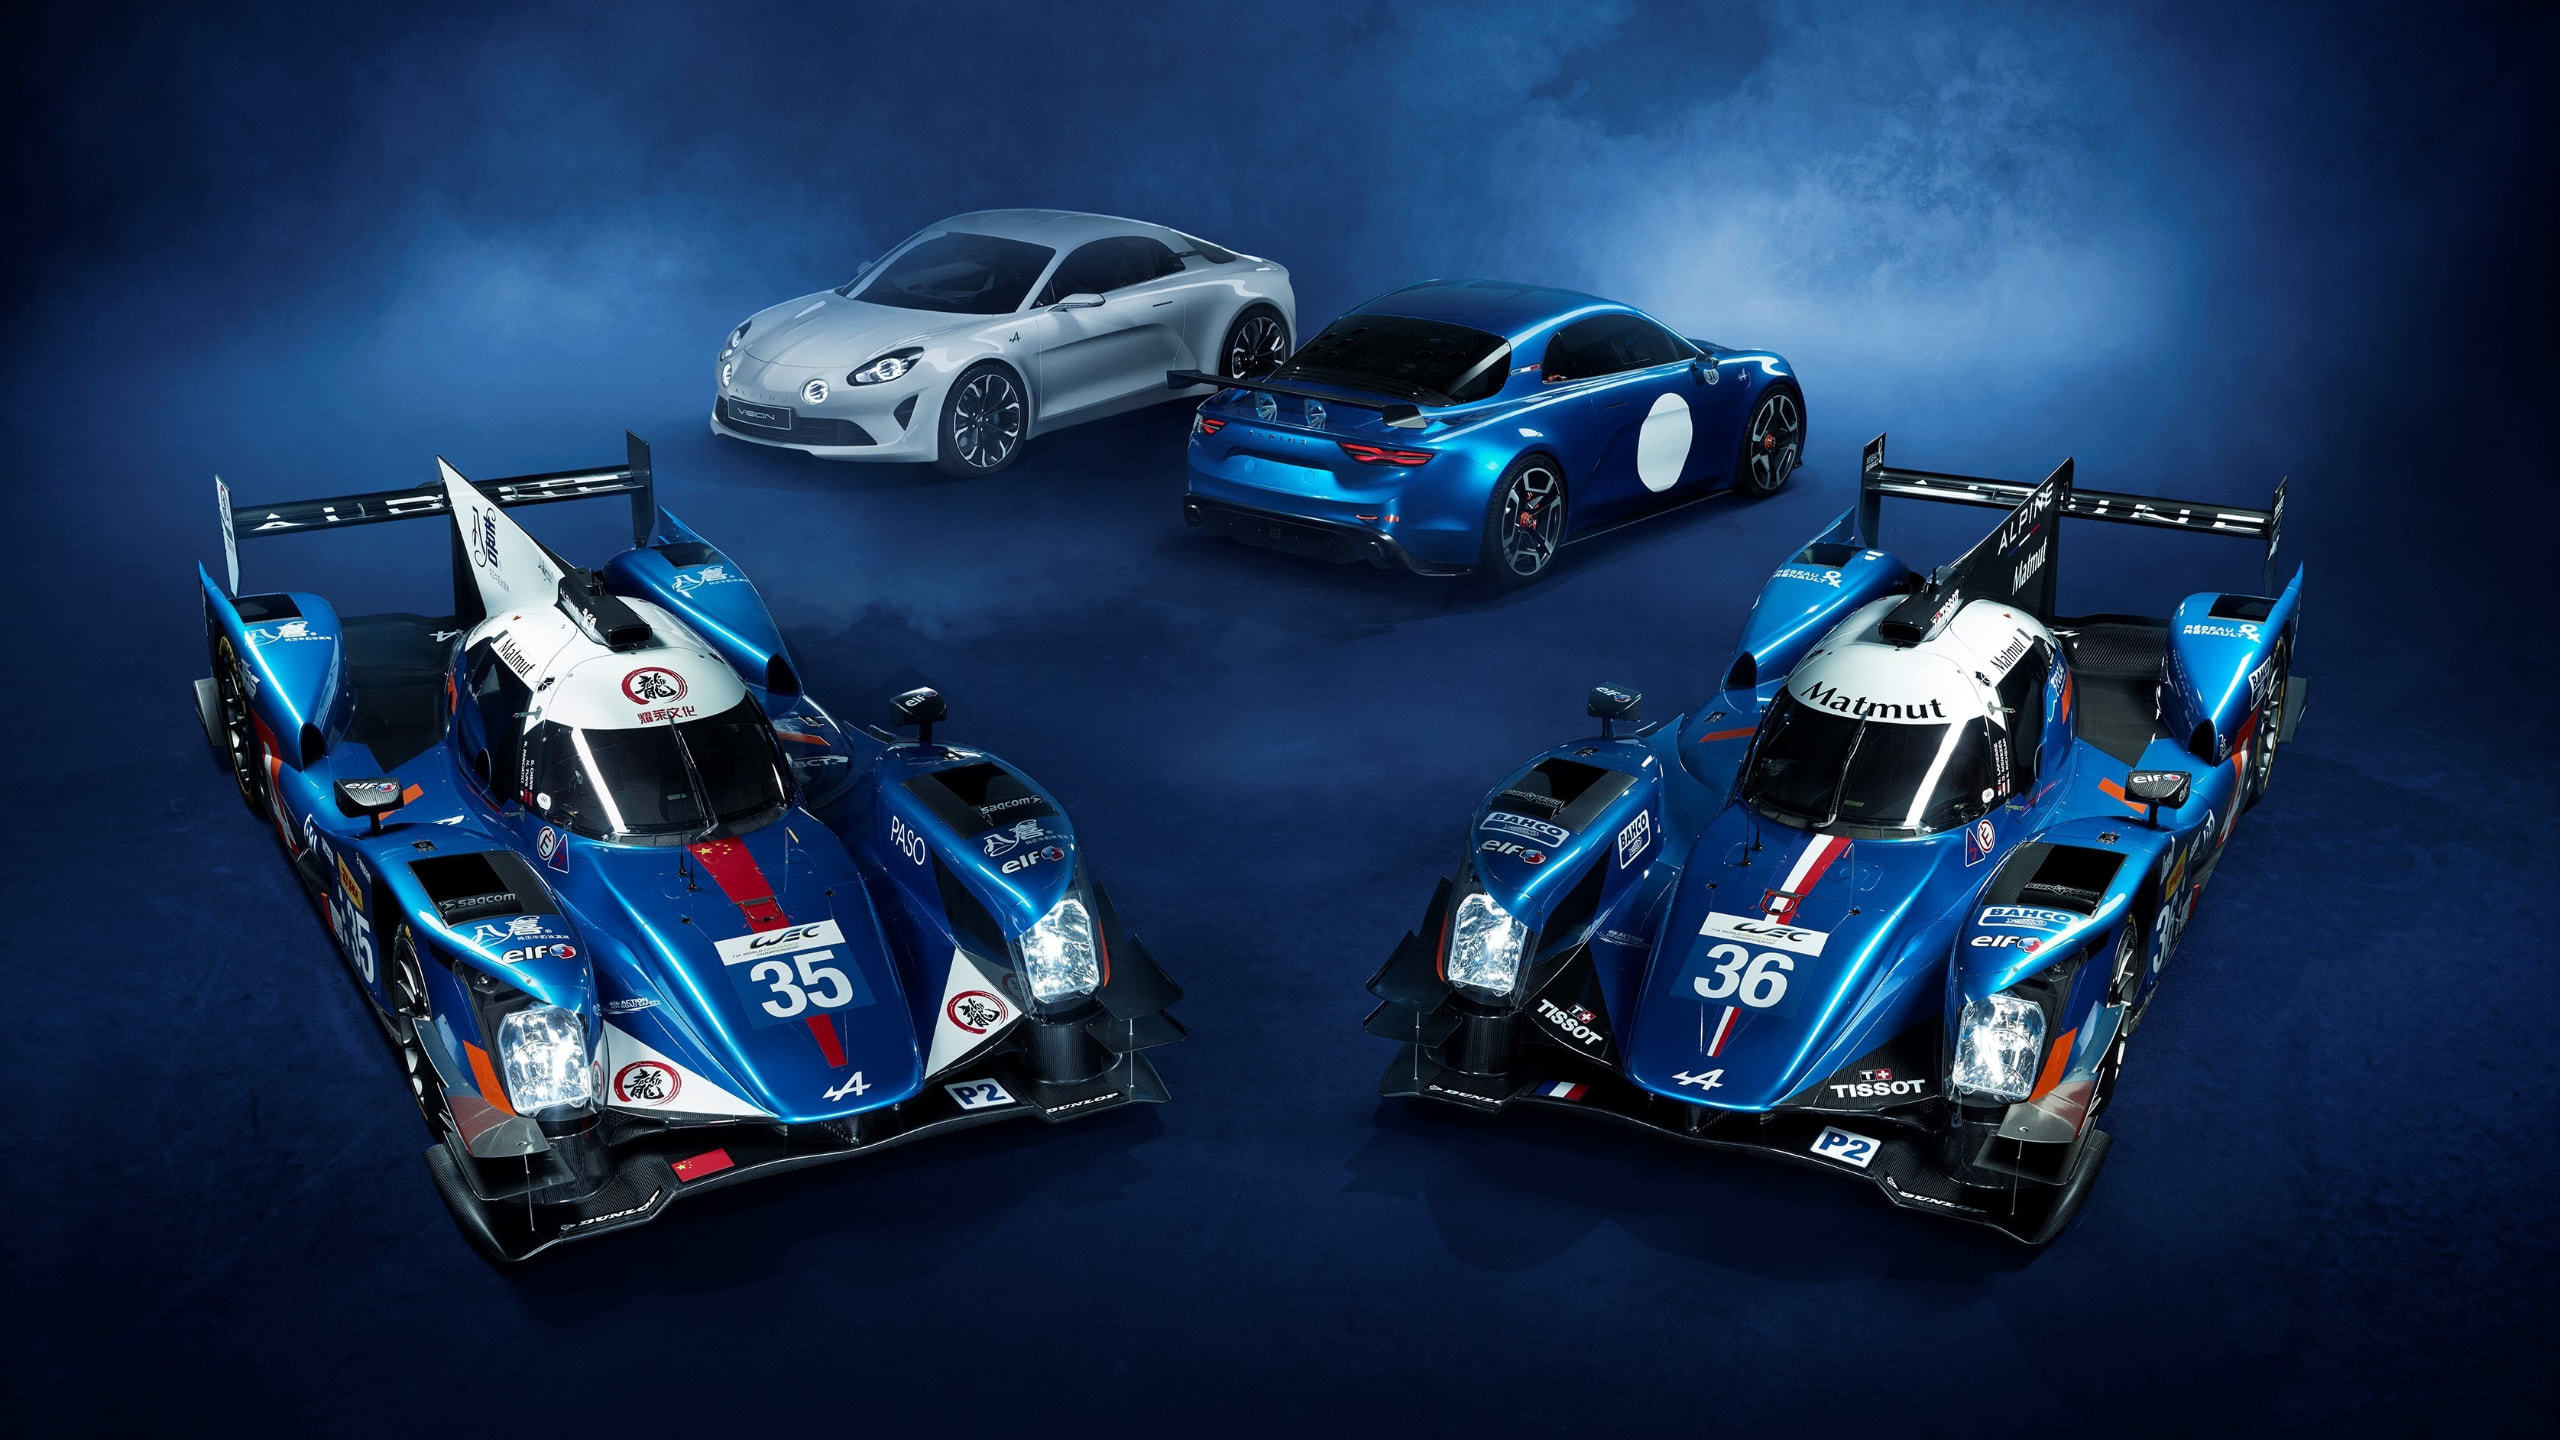 renault alpine a460 wqhd 1440p wallpaper